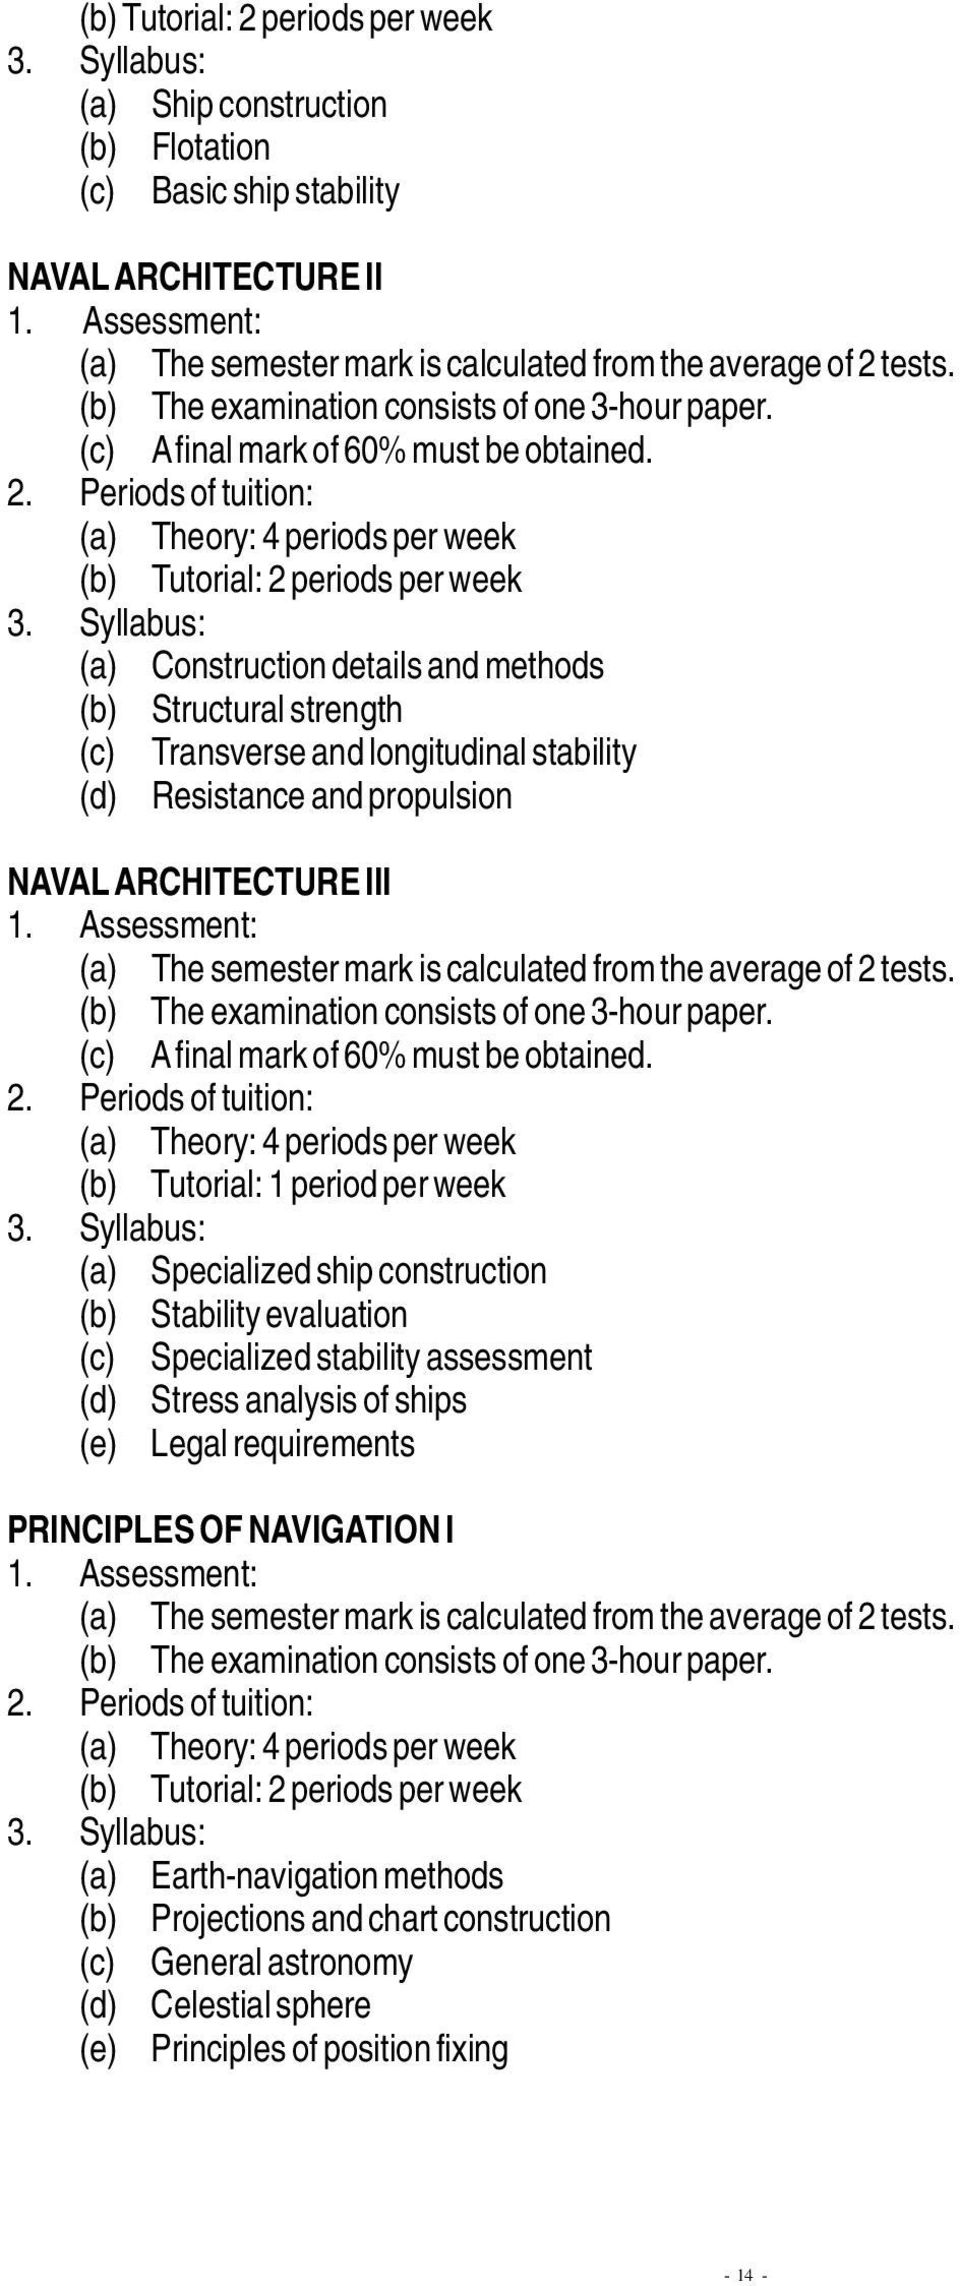 NAVAL ARCHITECTURE III (c) A final mark of 60% must be obtained.